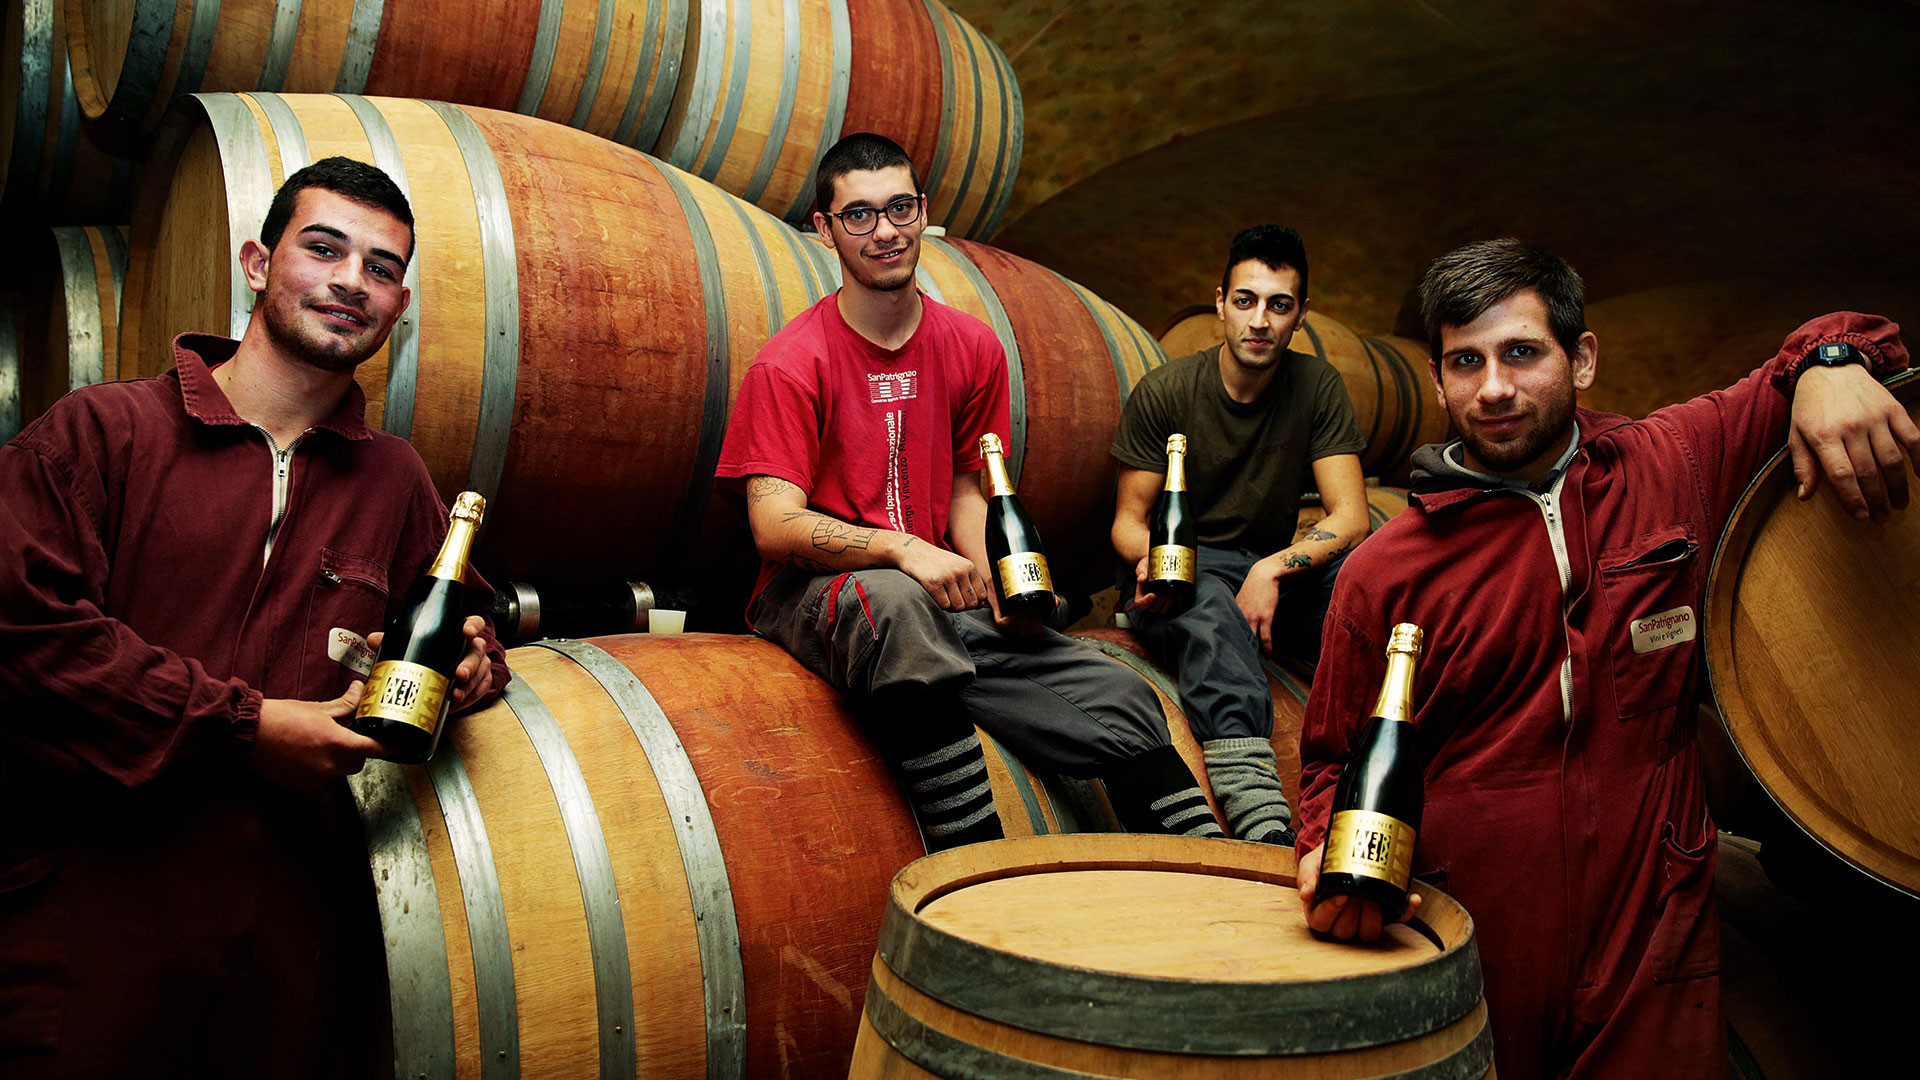 Residents in the ageing cellar, San Patrignano, Italy